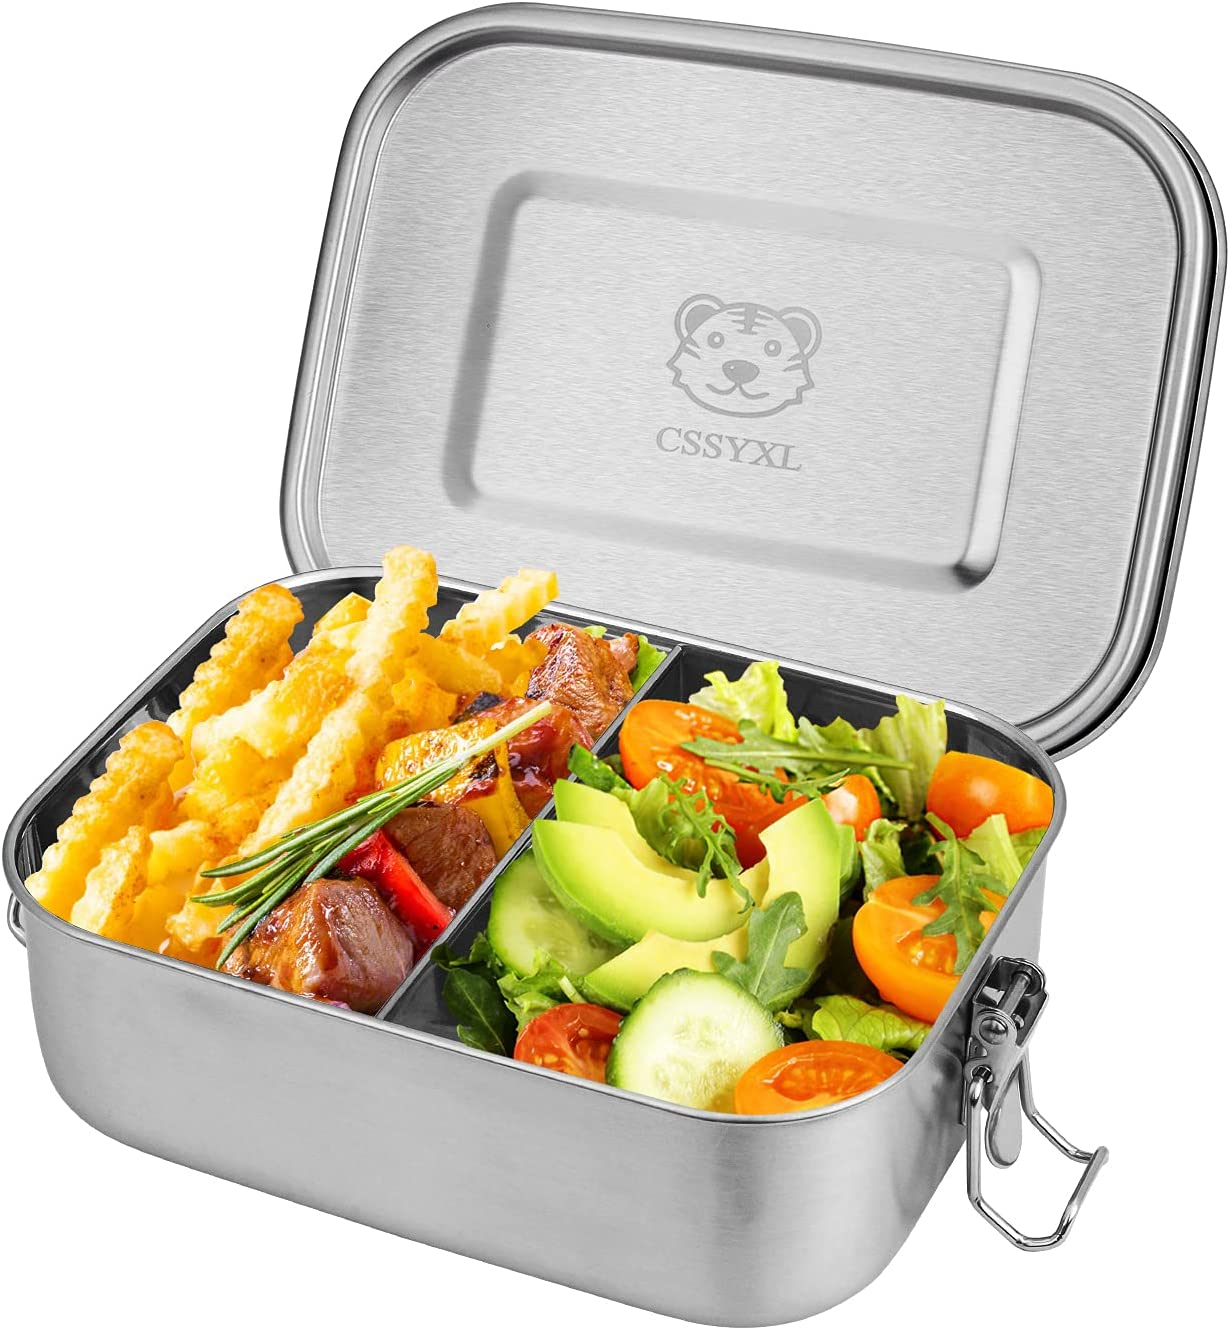 Stainless Steel Bento Box 800ML Single Layered Eco-friendly Food Containers Hot Lunch 2 Compartment Divided Leakproof Lunch Box Dining for Kids Adults with Clip Locks Metal Tiffin Box-Stainless Lid